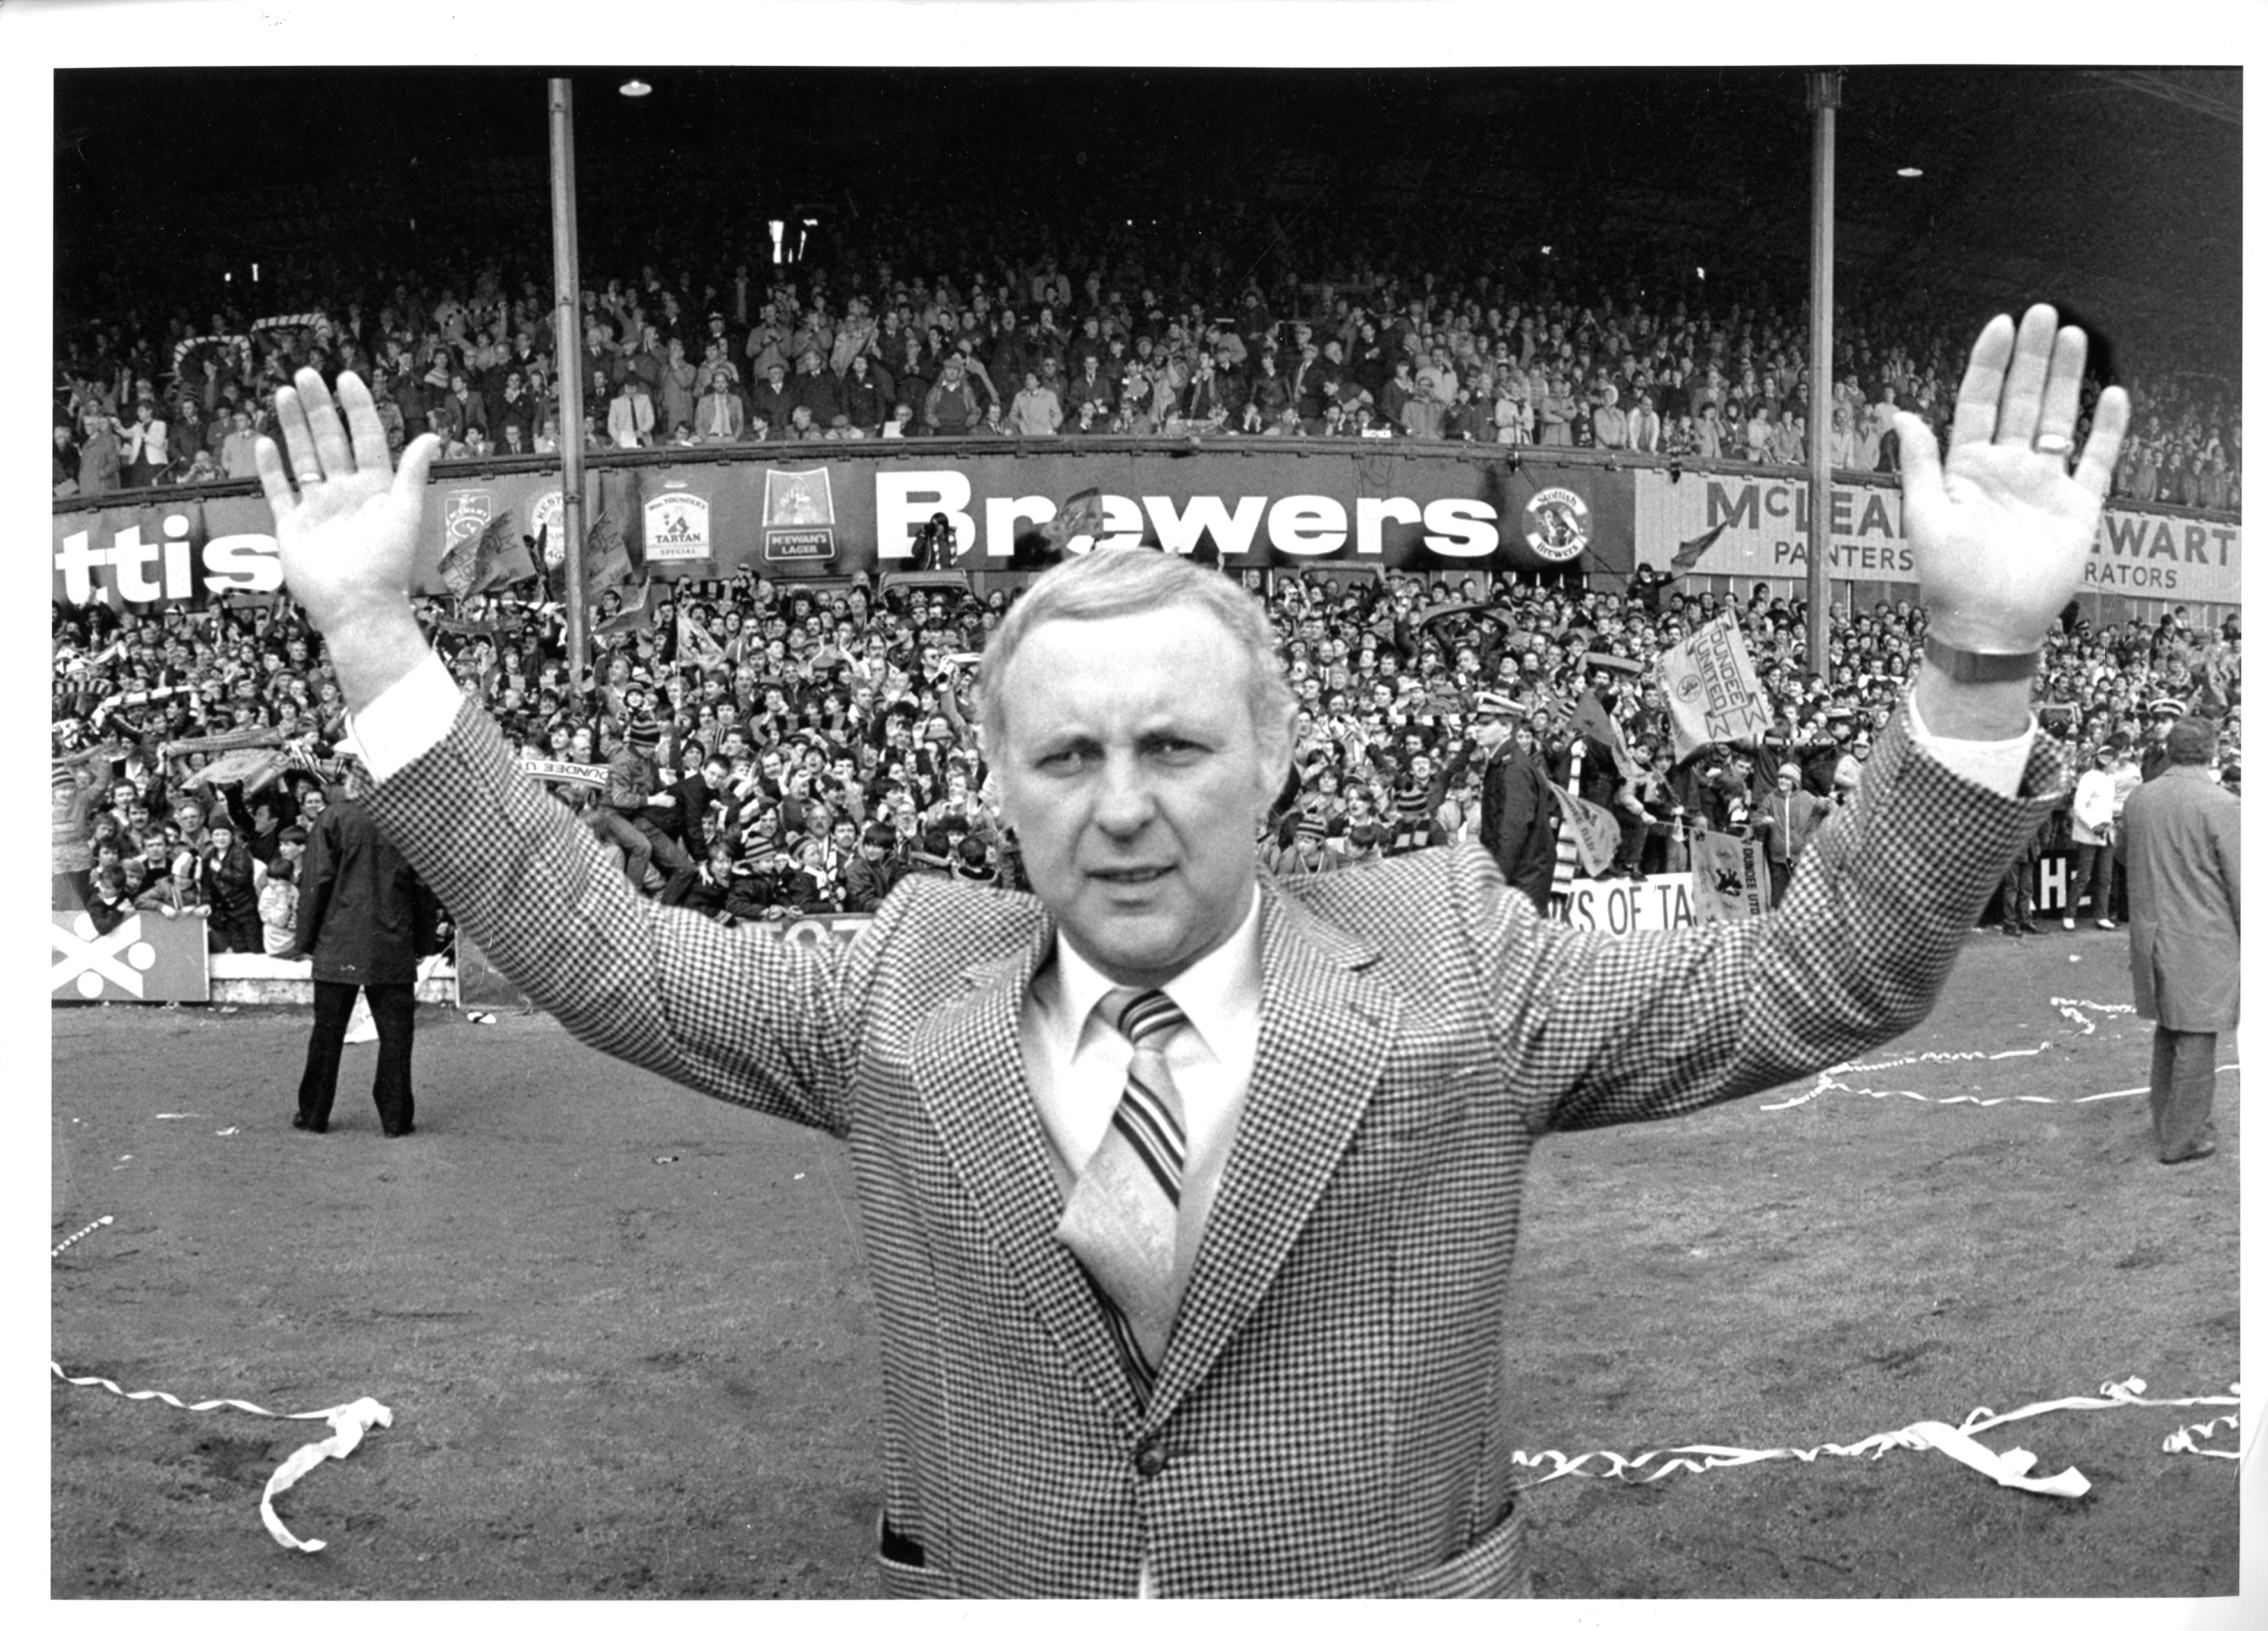 United legend Jim McLean